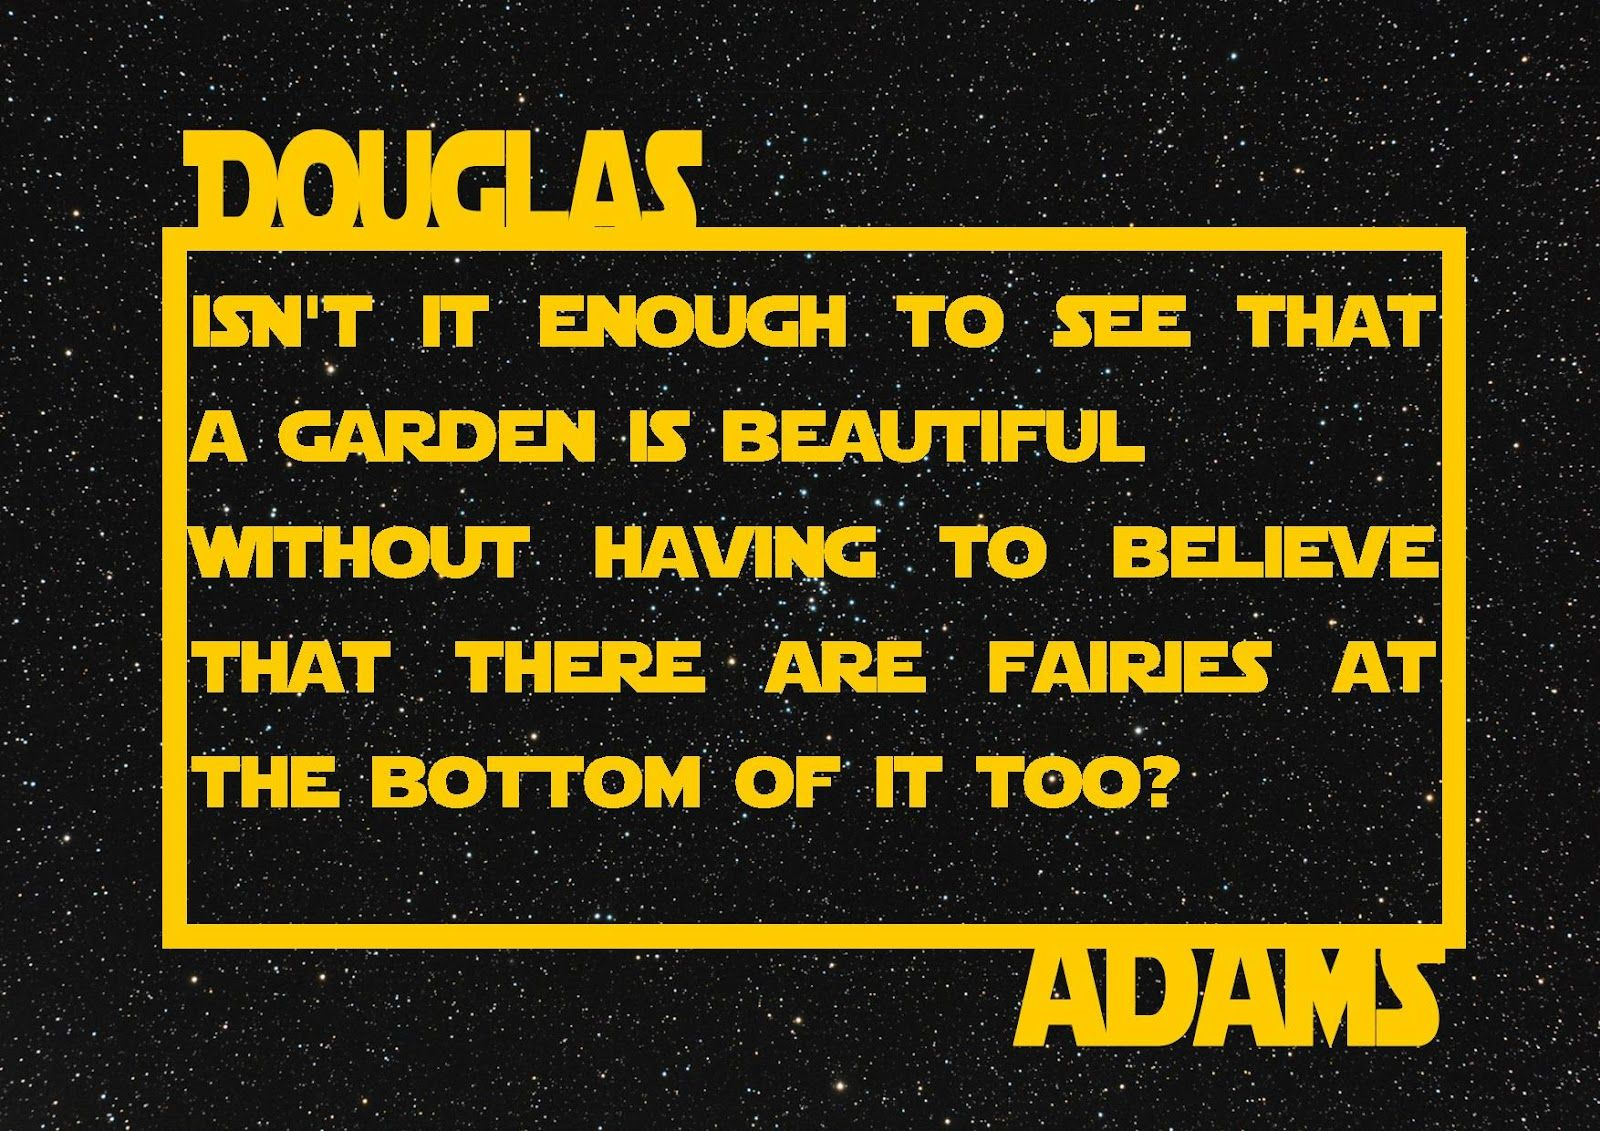 Ford Prefect The Hitchhikers Guide To The Galaxy Hitchhikers Guide To The Galaxy Douglas Adams Best Quotes Ever